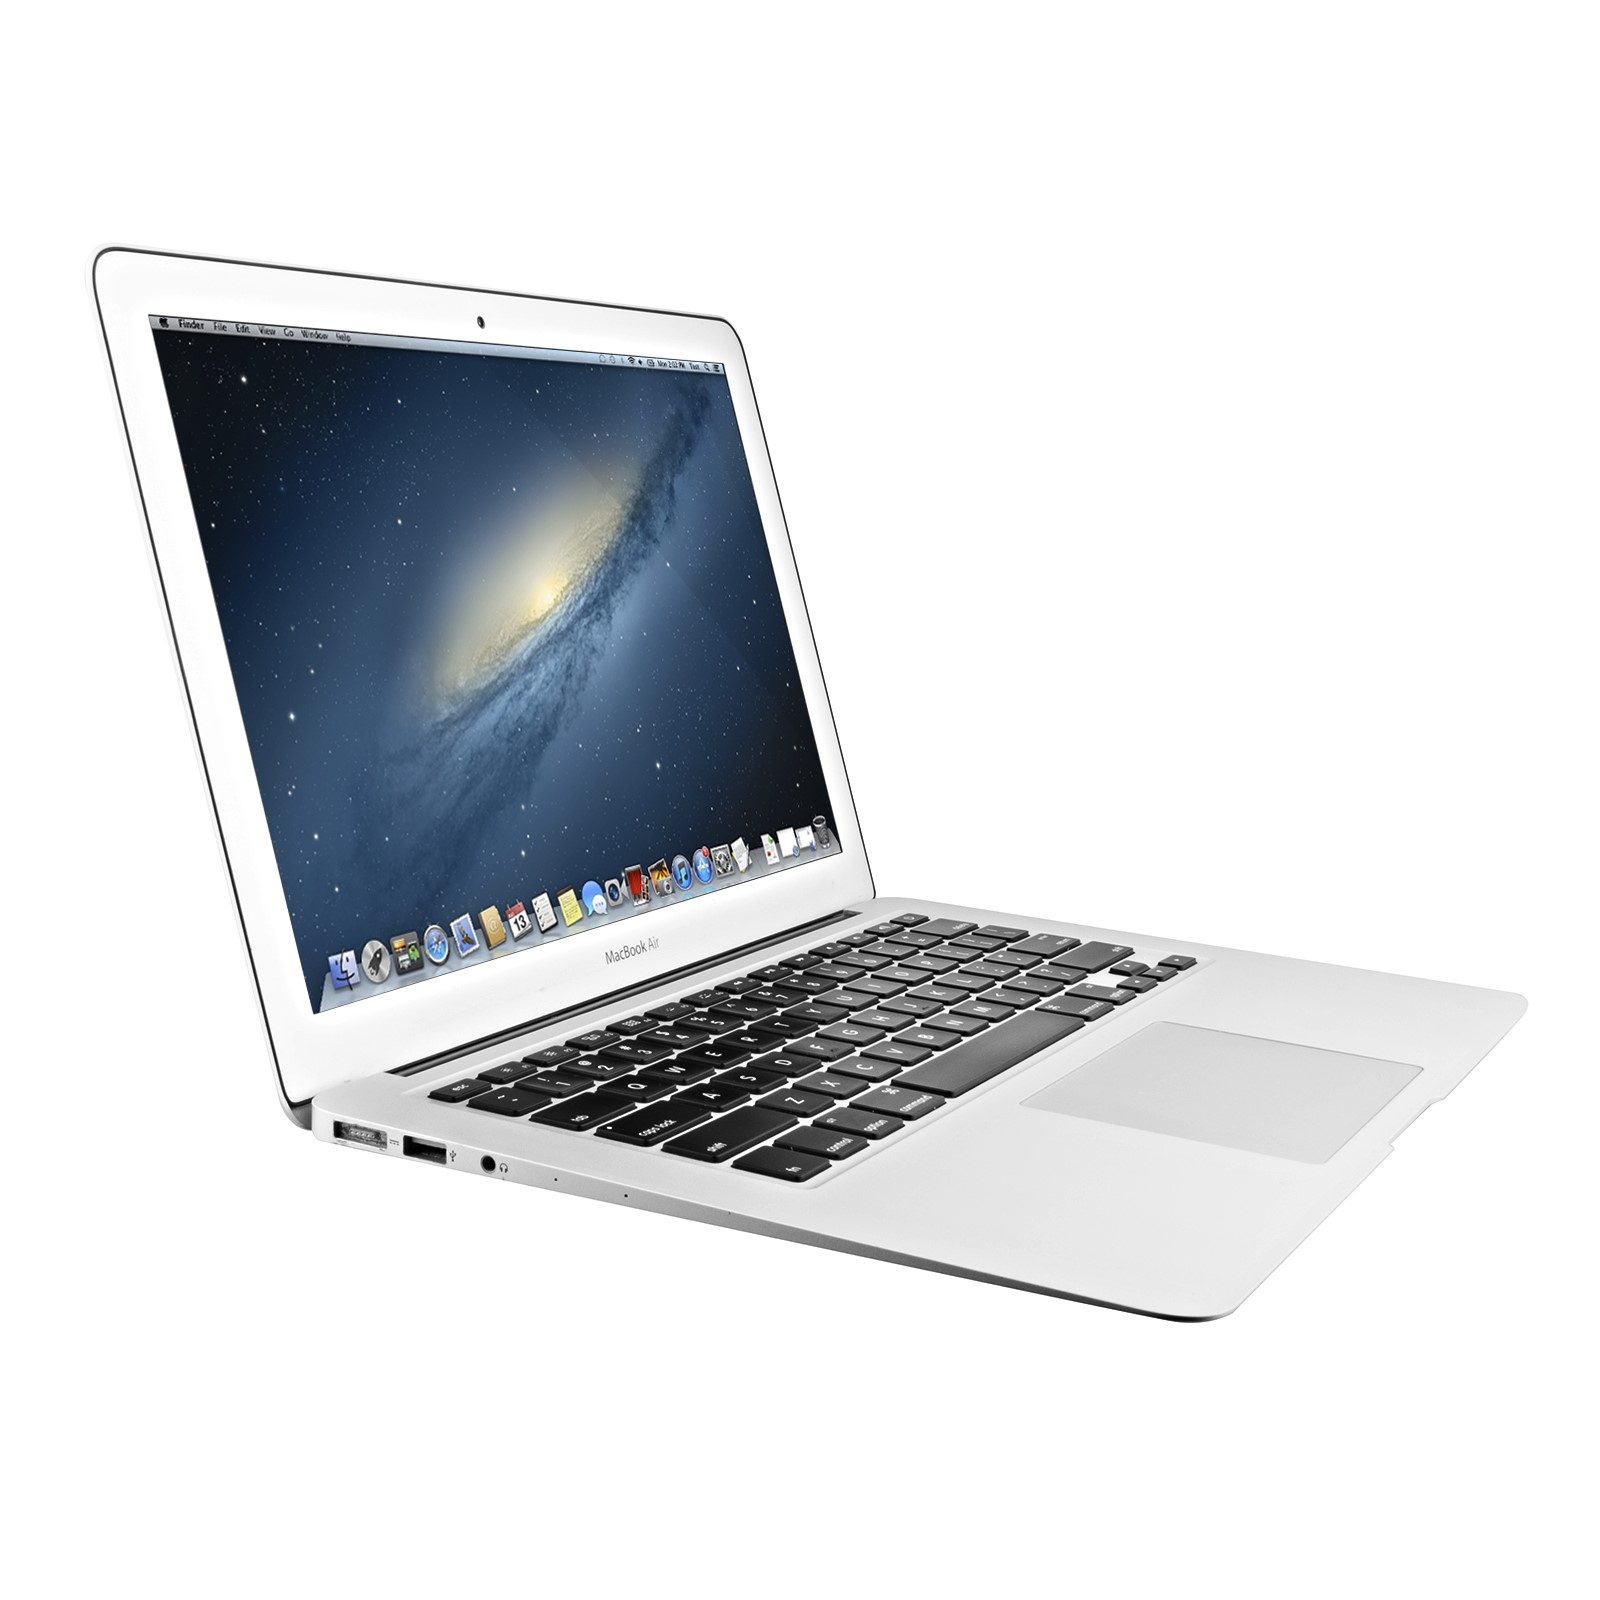 MacBook Air Computers